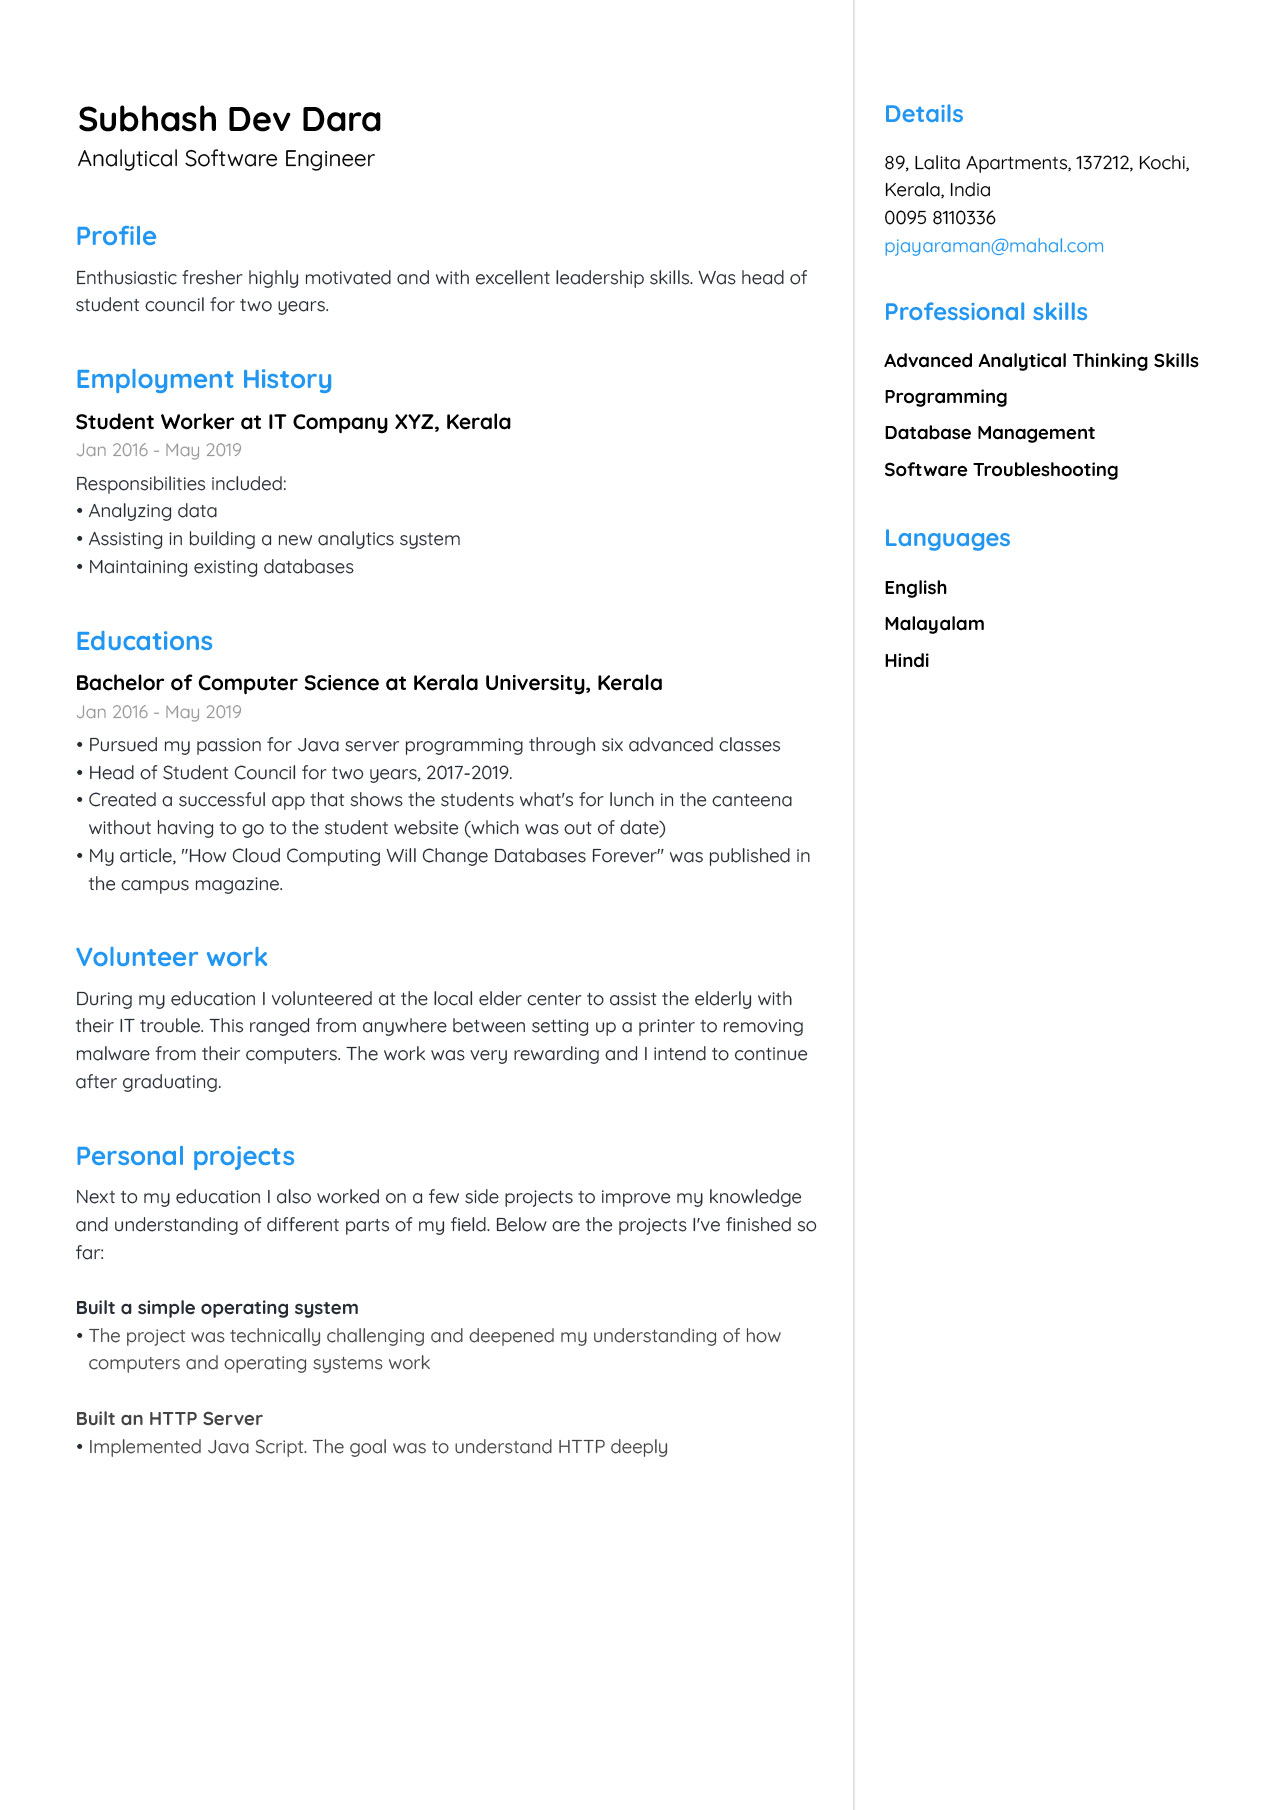 the best cv format for freshers examples jofibo resume title fresher analytical software Resume Best Resume Title For Fresher